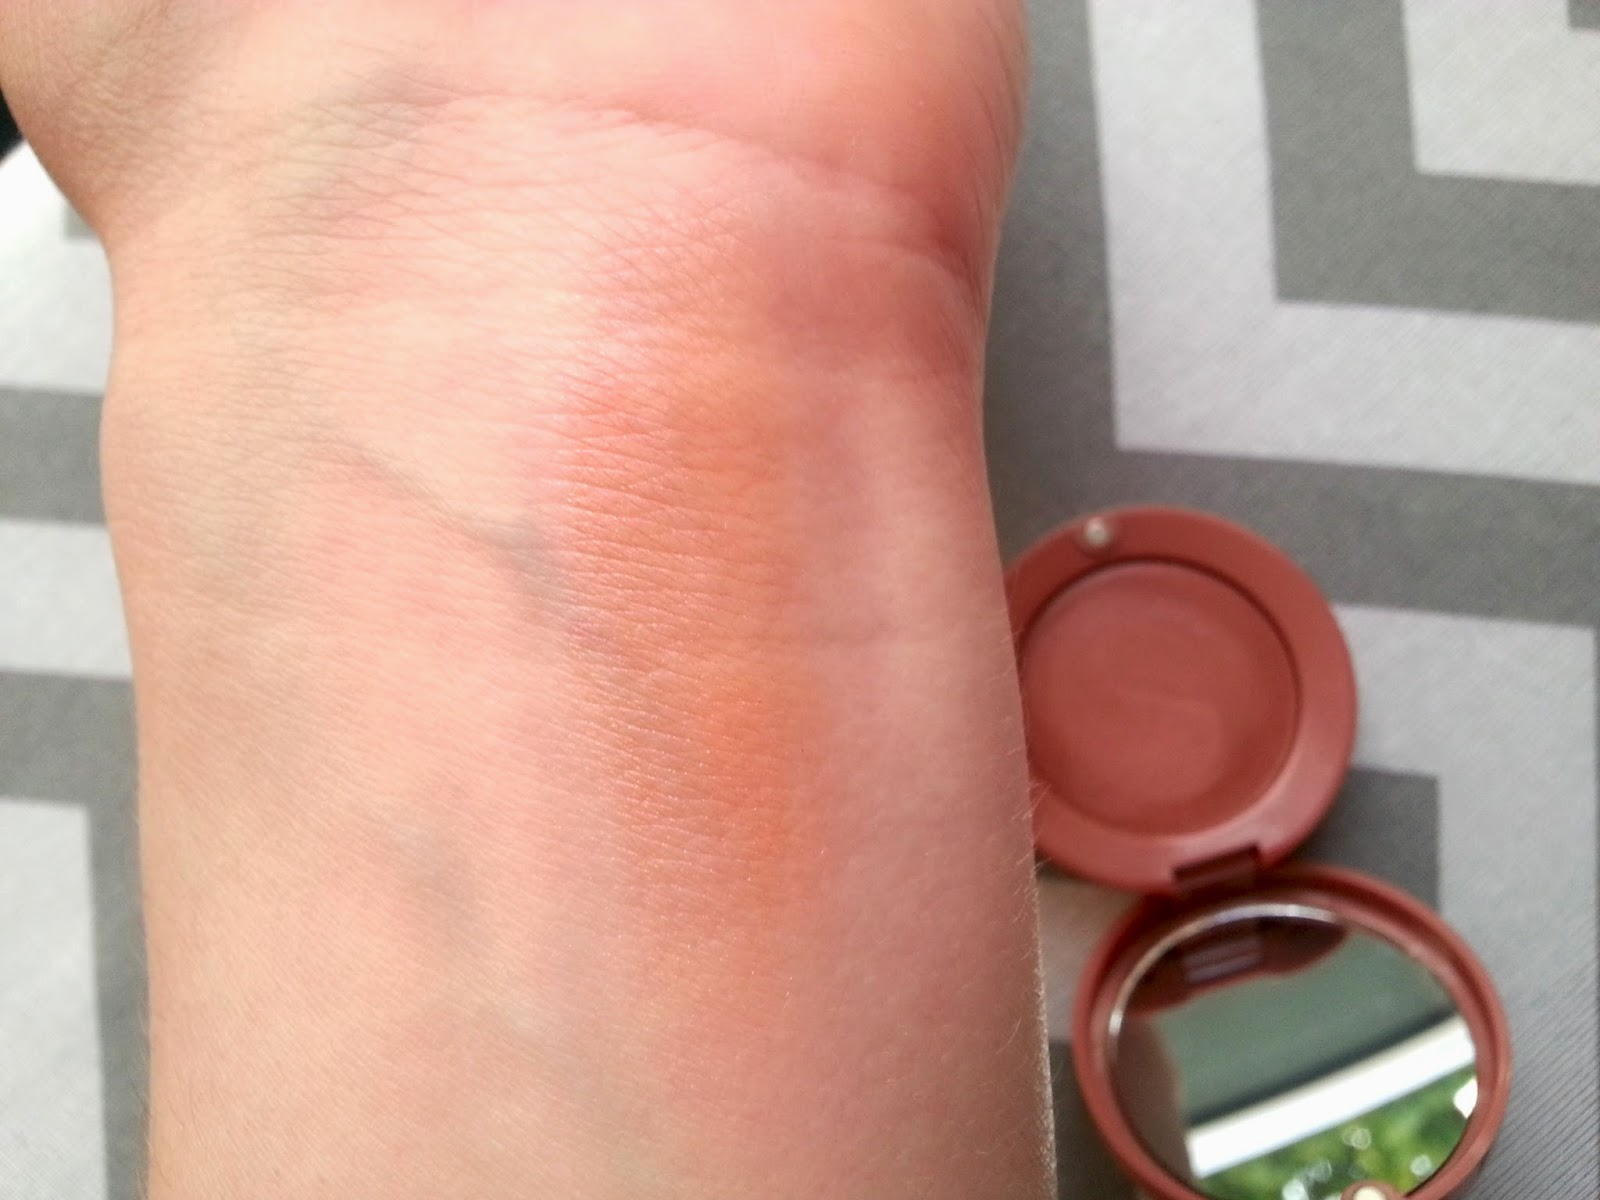 Bourjois Cream Blush in 05 Pink Sunwear Swatches and Review